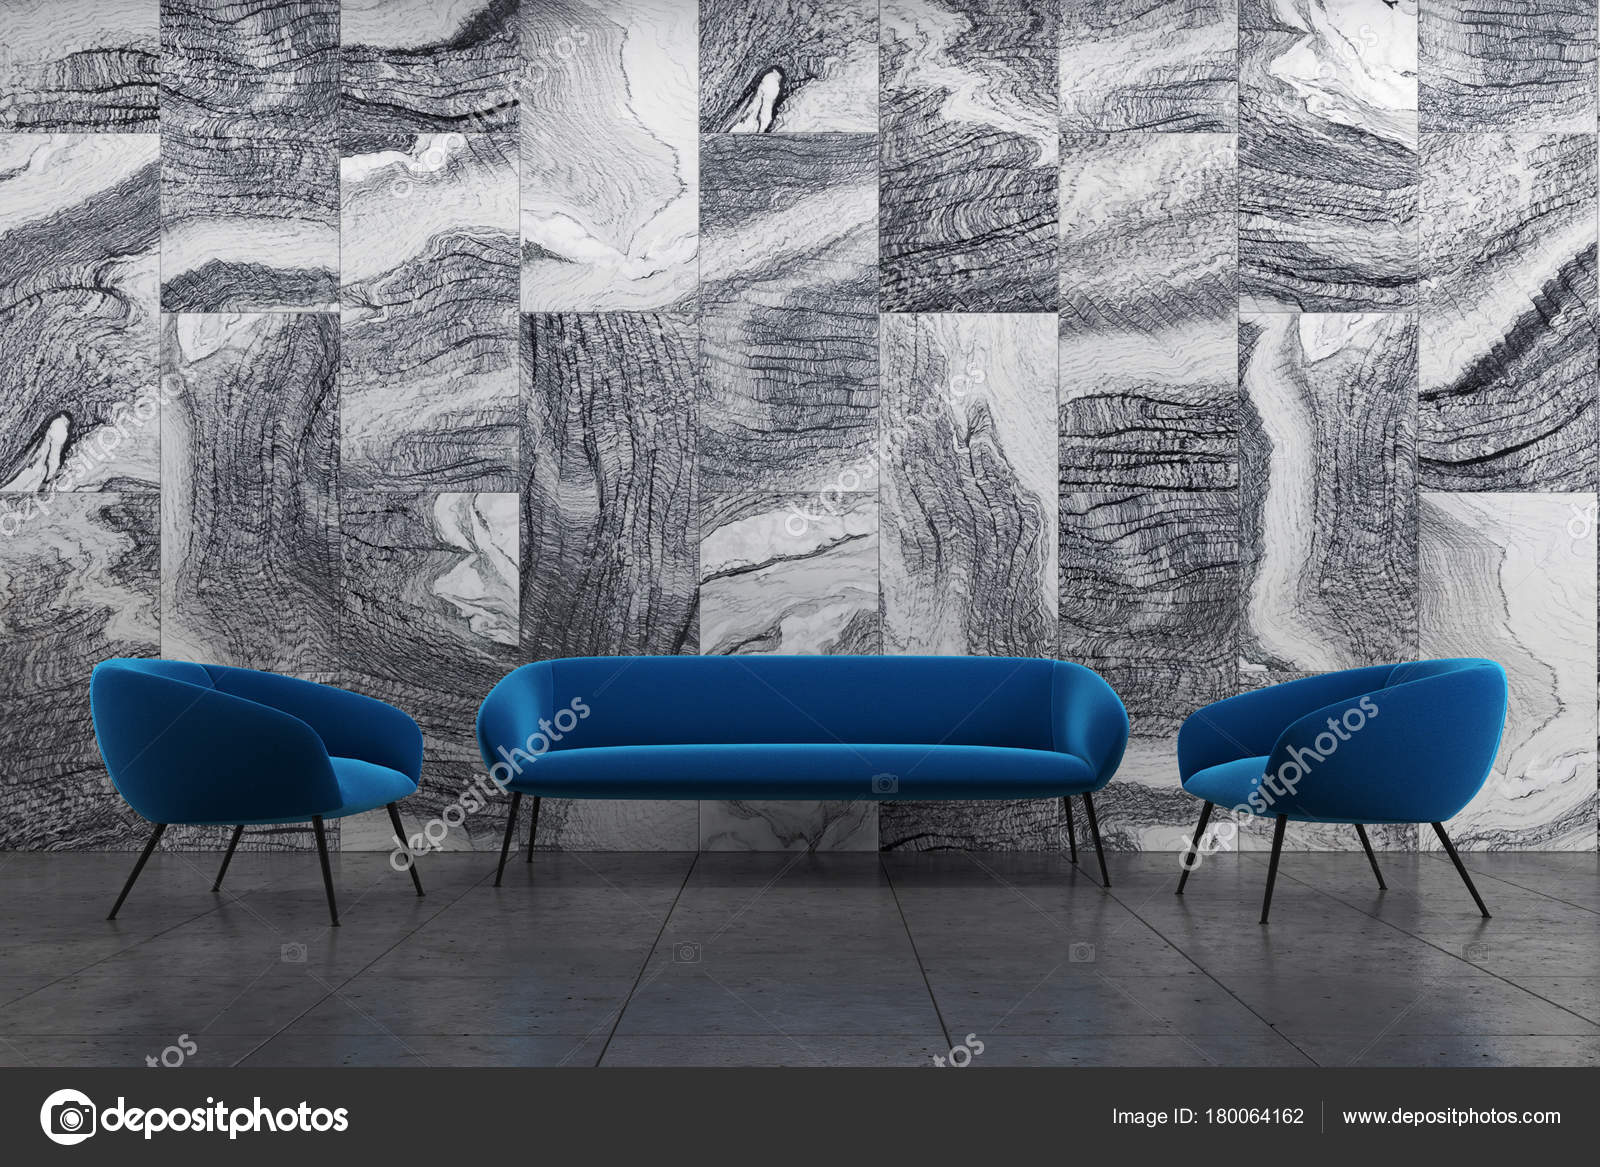 Swell Marble Living Room Blue Sofa Armchairs Stock Photo Evergreenethics Interior Chair Design Evergreenethicsorg